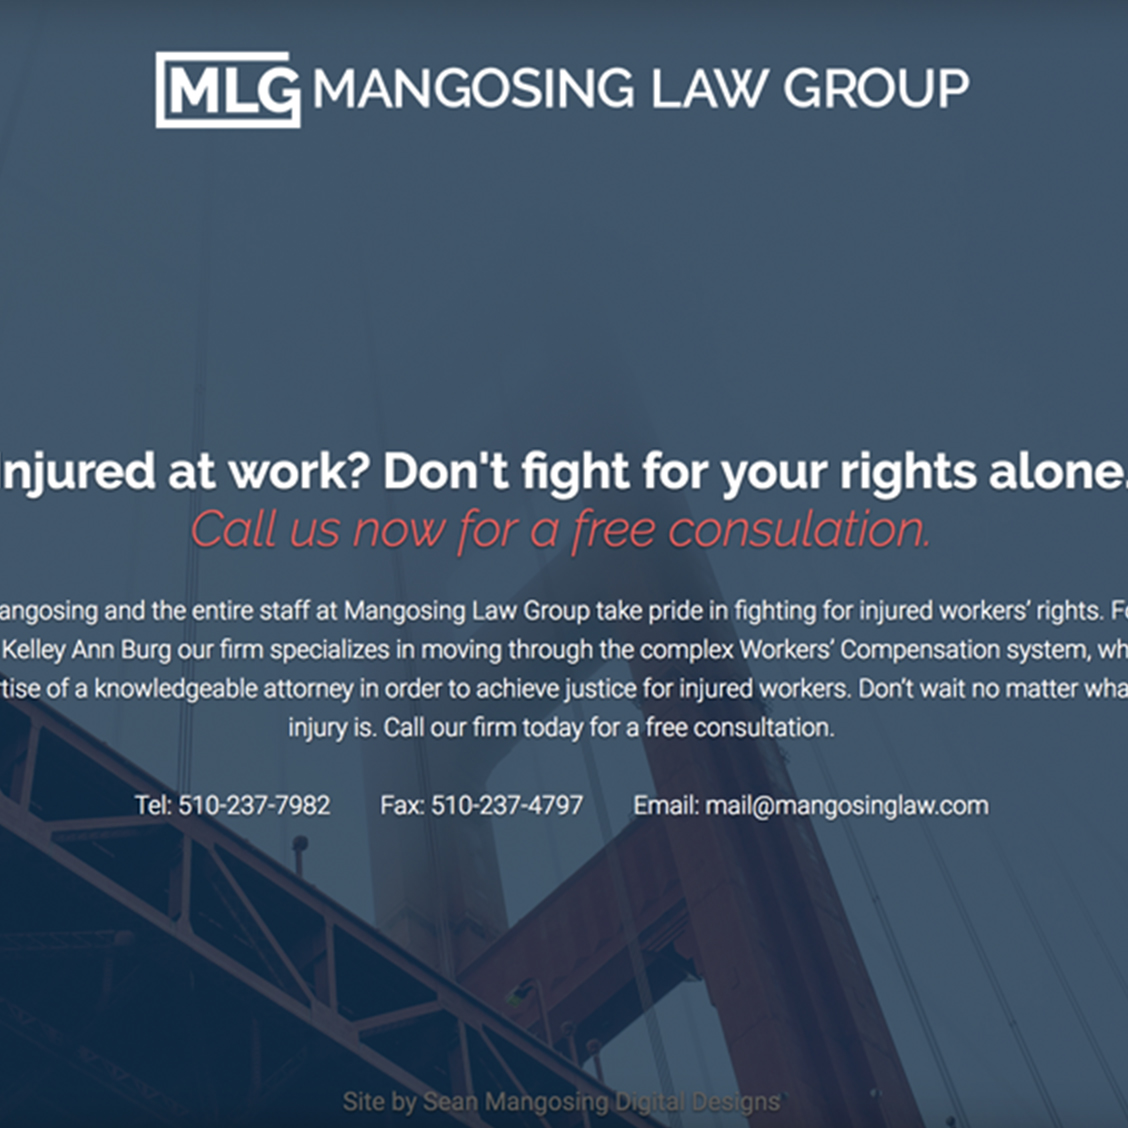 Mangosing Law Group